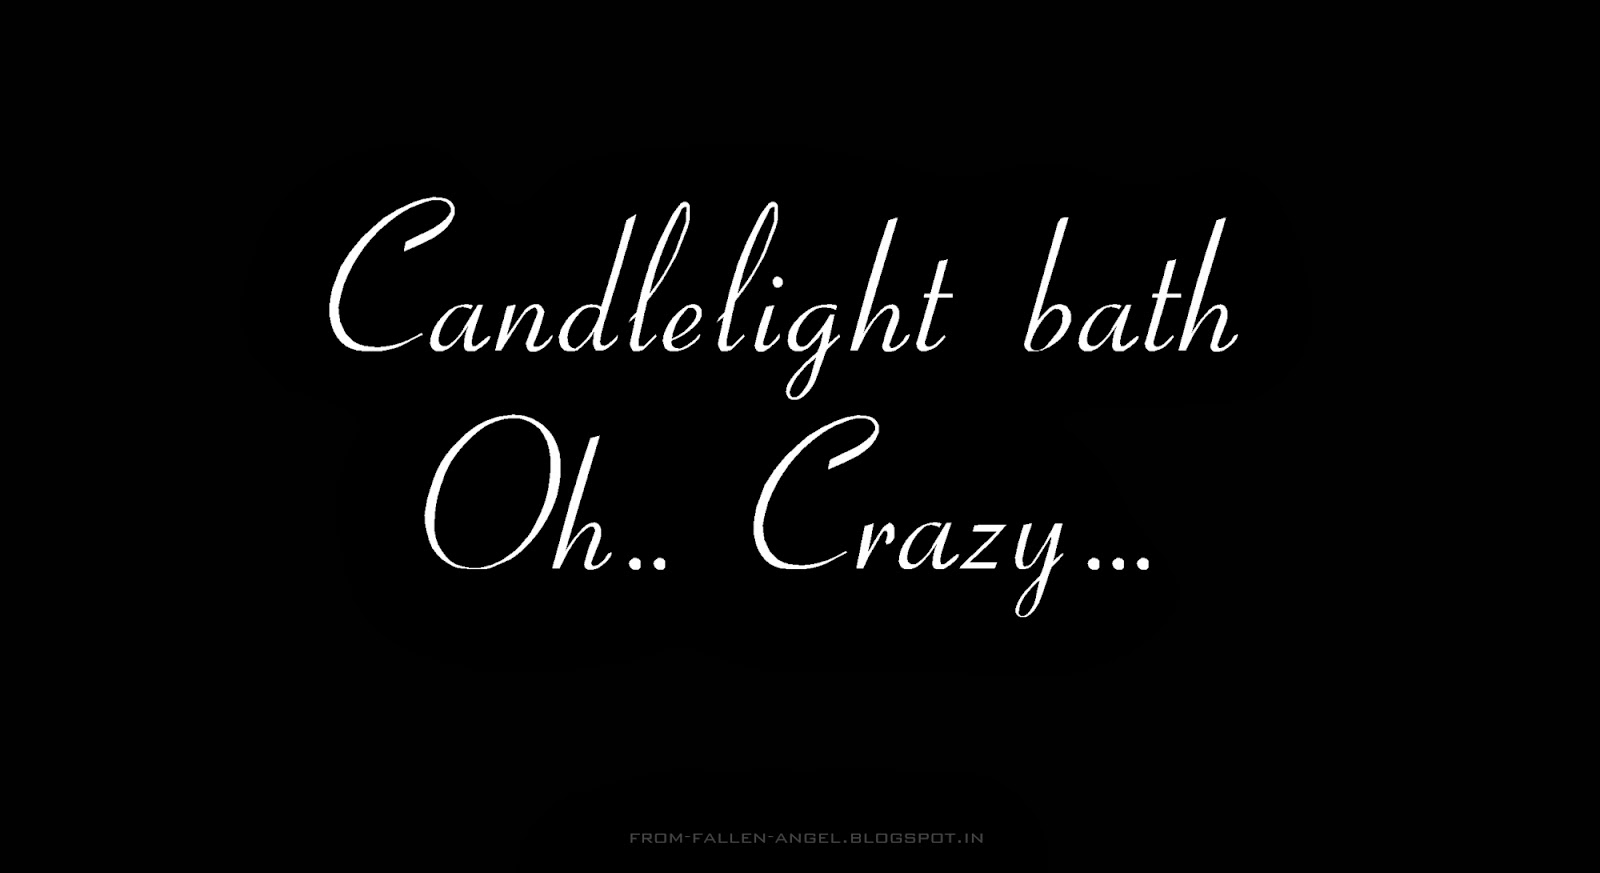 Candlelight bath Oh.. Crazy...